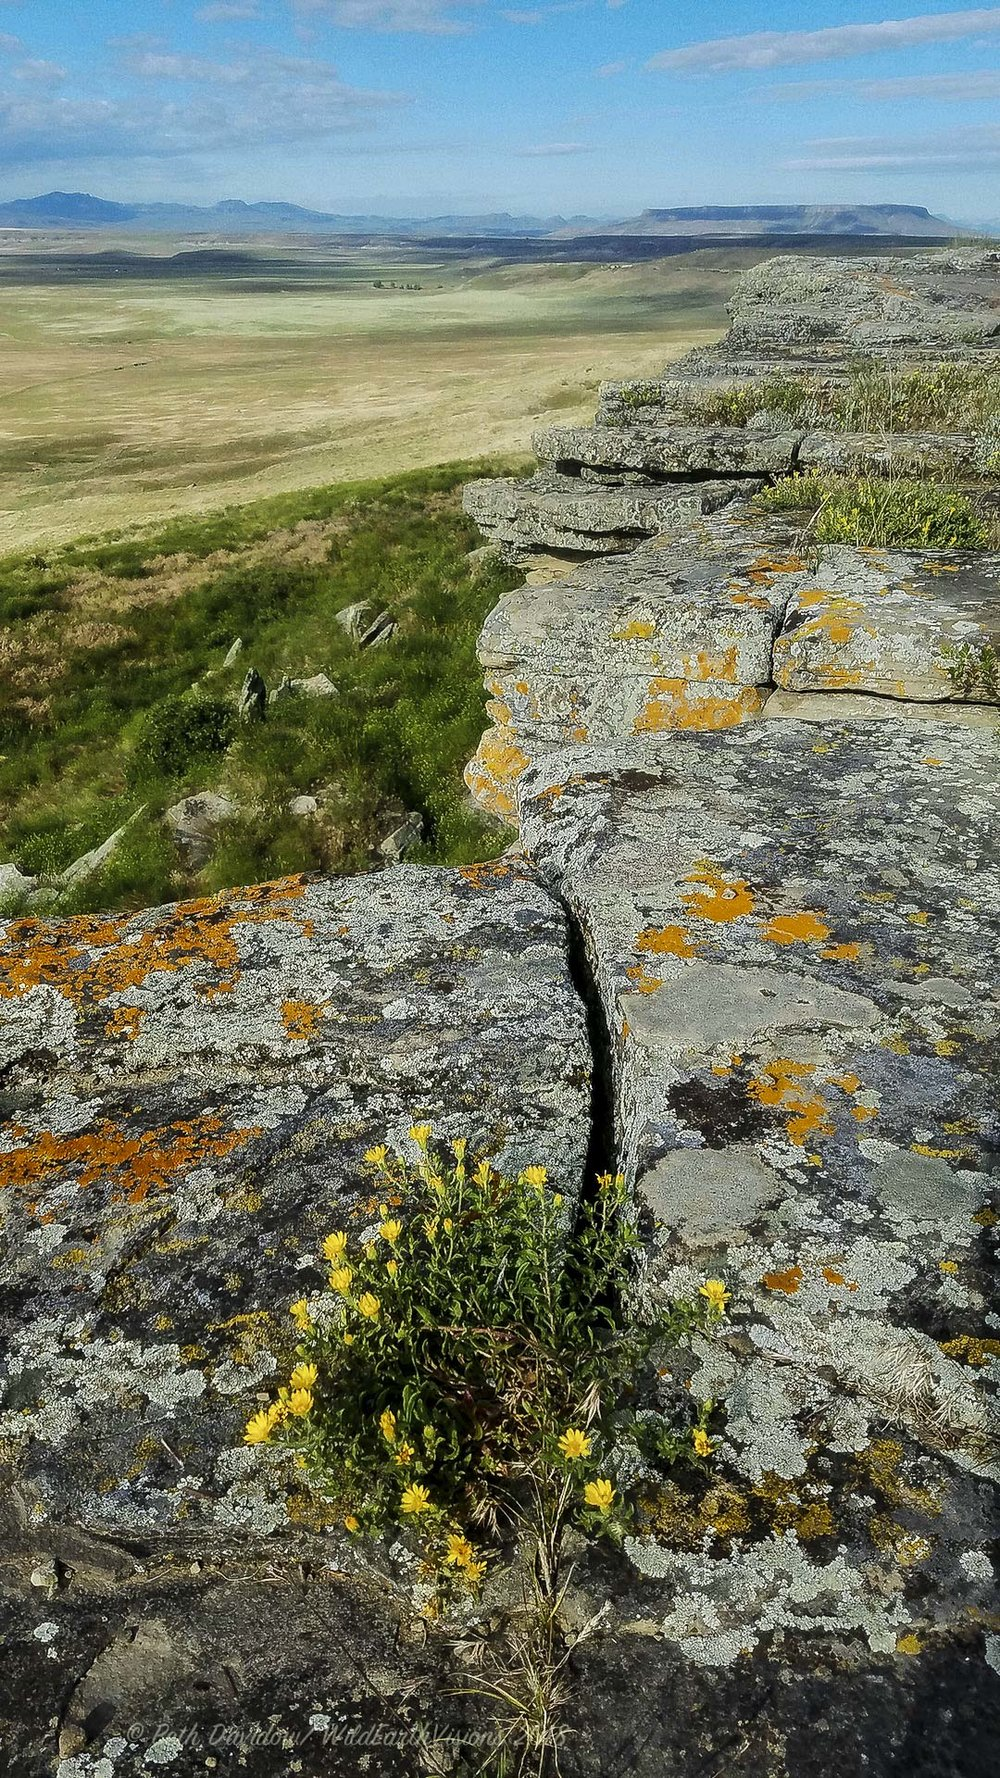 Colorful lichens and flowers along the clifftop.